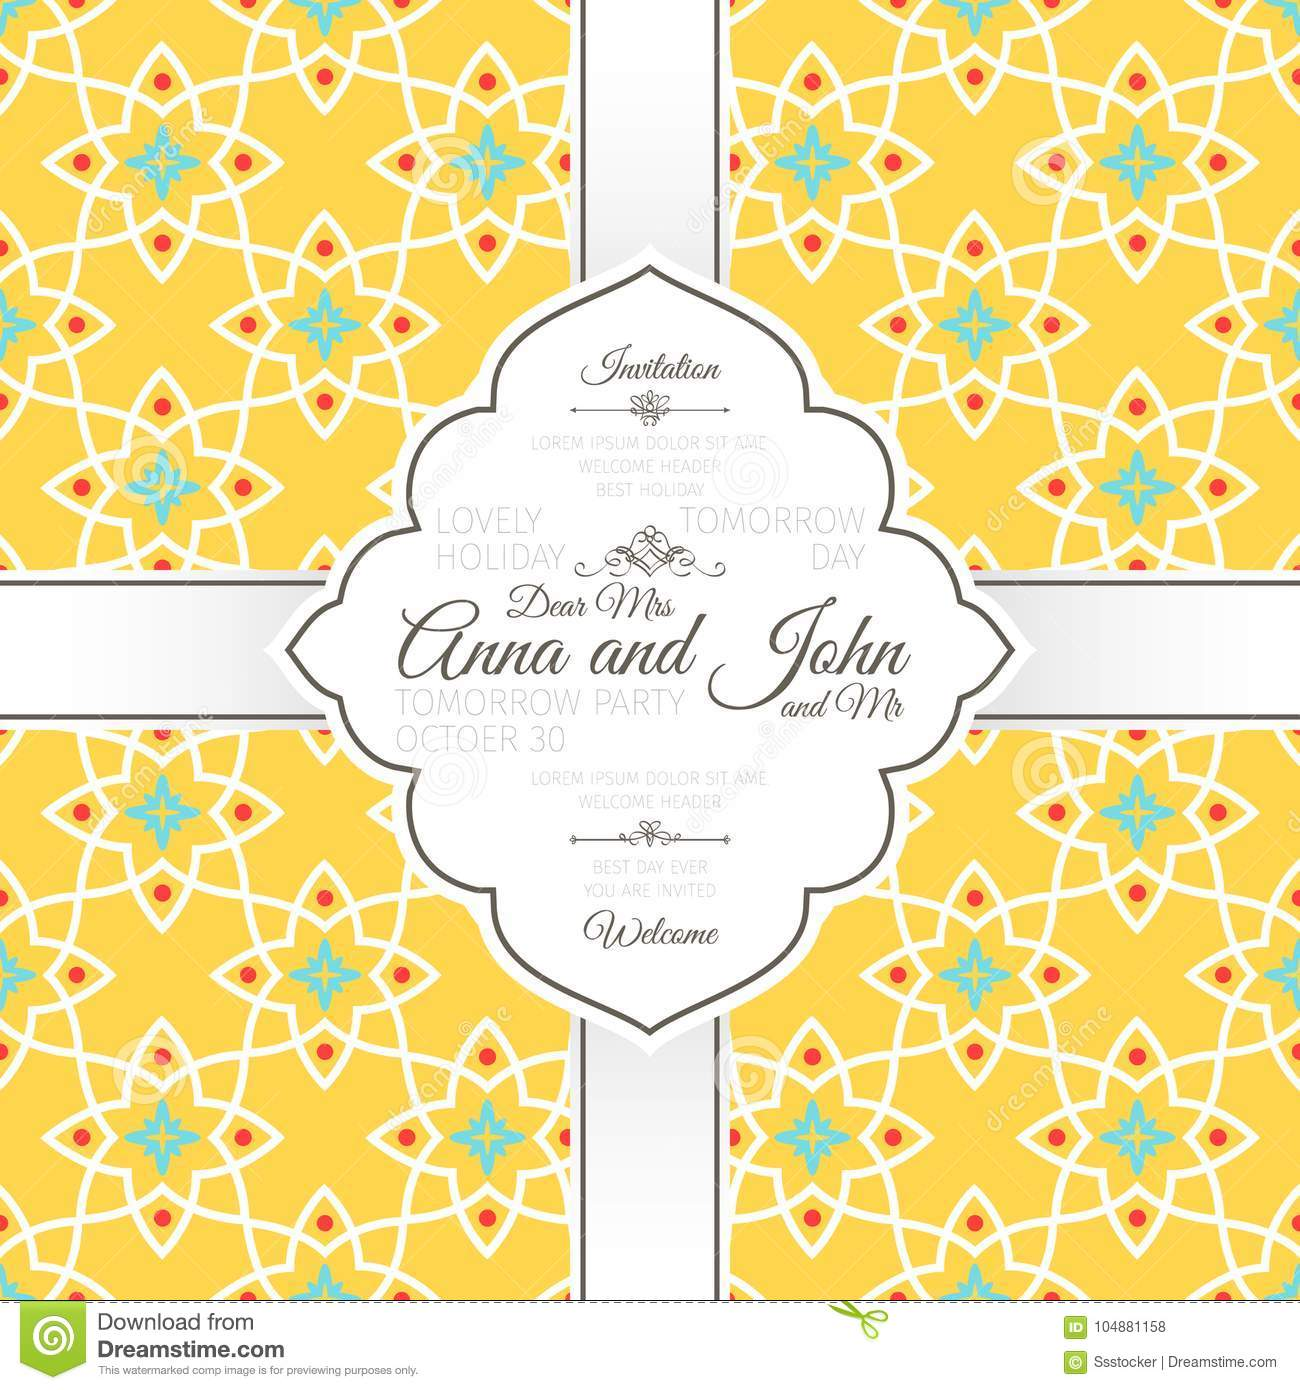 Invitation card with islamic yellow pattern stock vector download invitation card with islamic yellow pattern stock vector illustration of decorative design stopboris Images